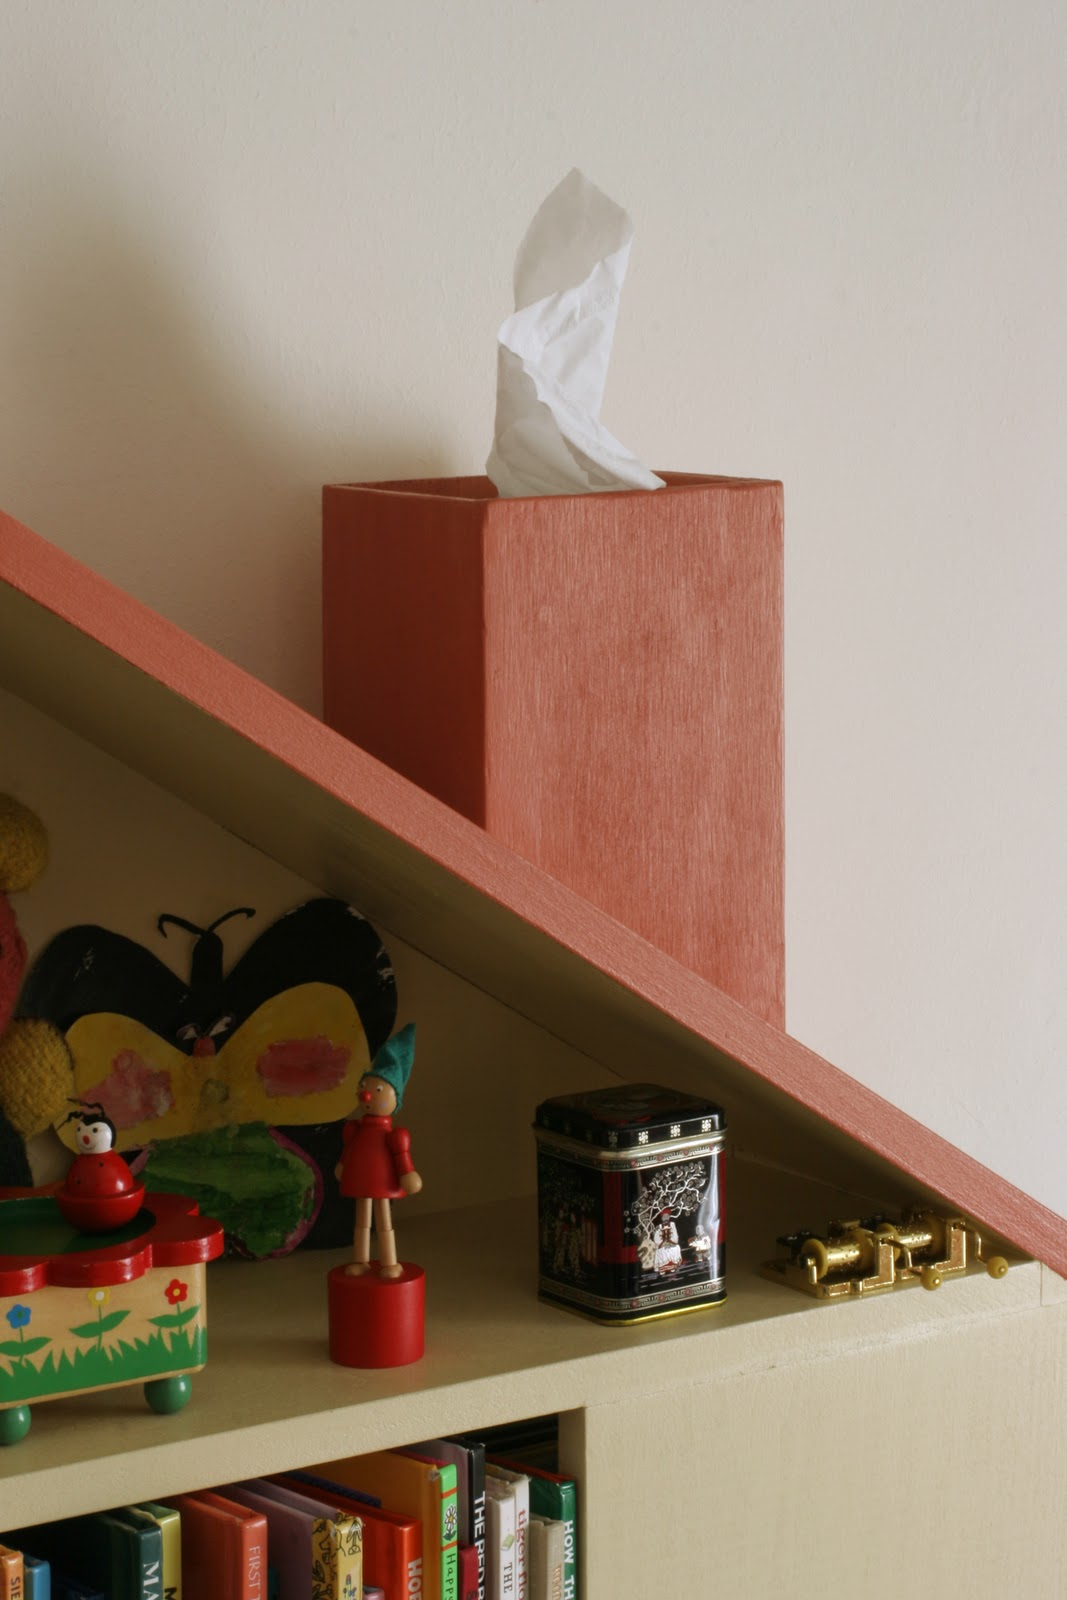 Marvelous photograph of The Brooding Hen: House Bookshelf with #A63125 color and 1067x1600 pixels